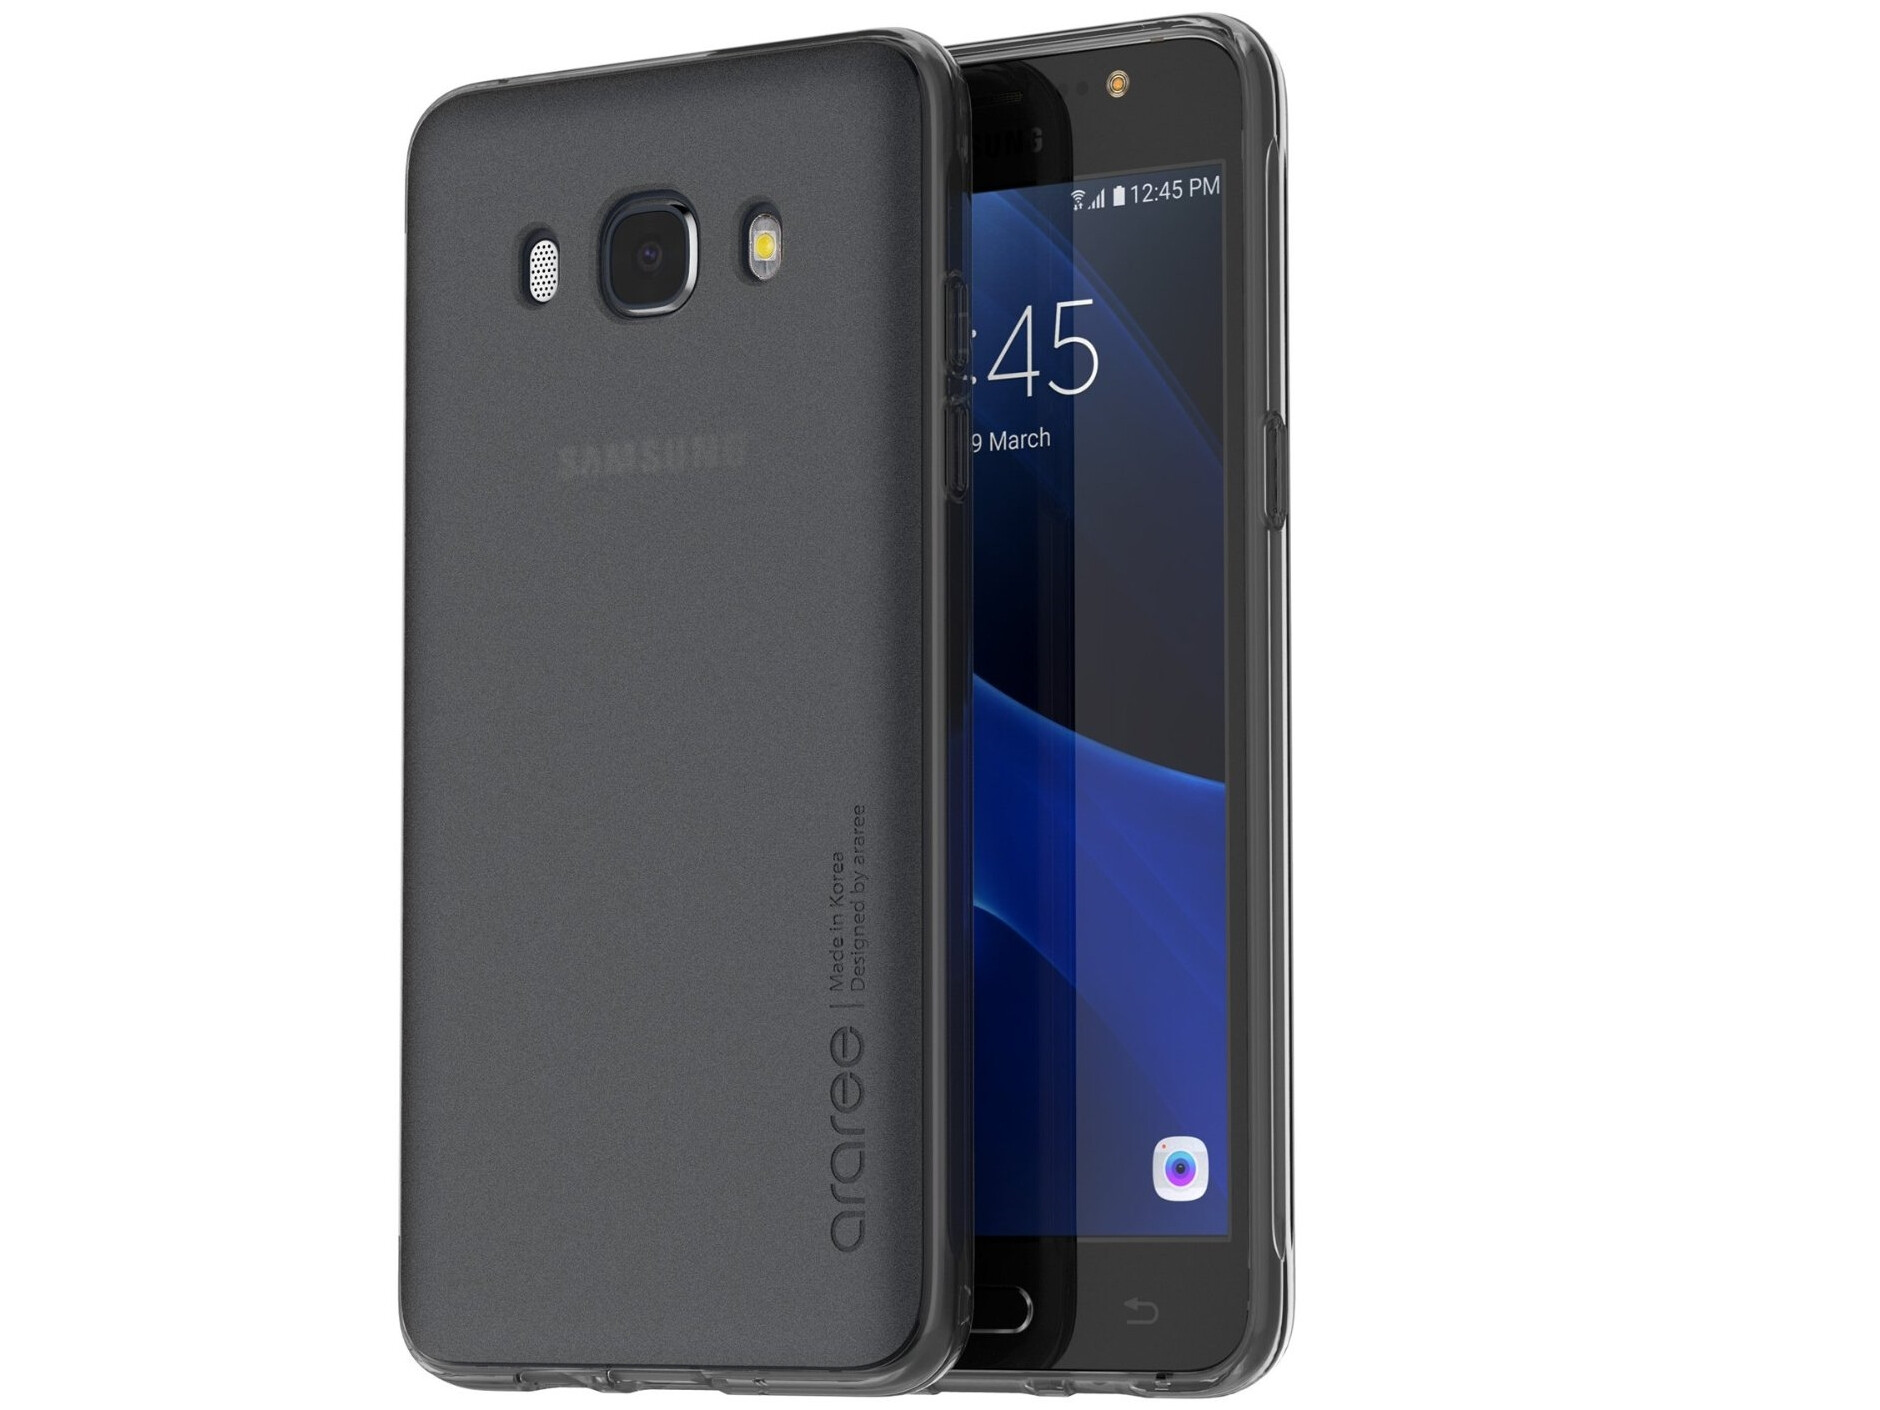 reliable cases to buy for your new Samsung Galaxy J5 (2016)